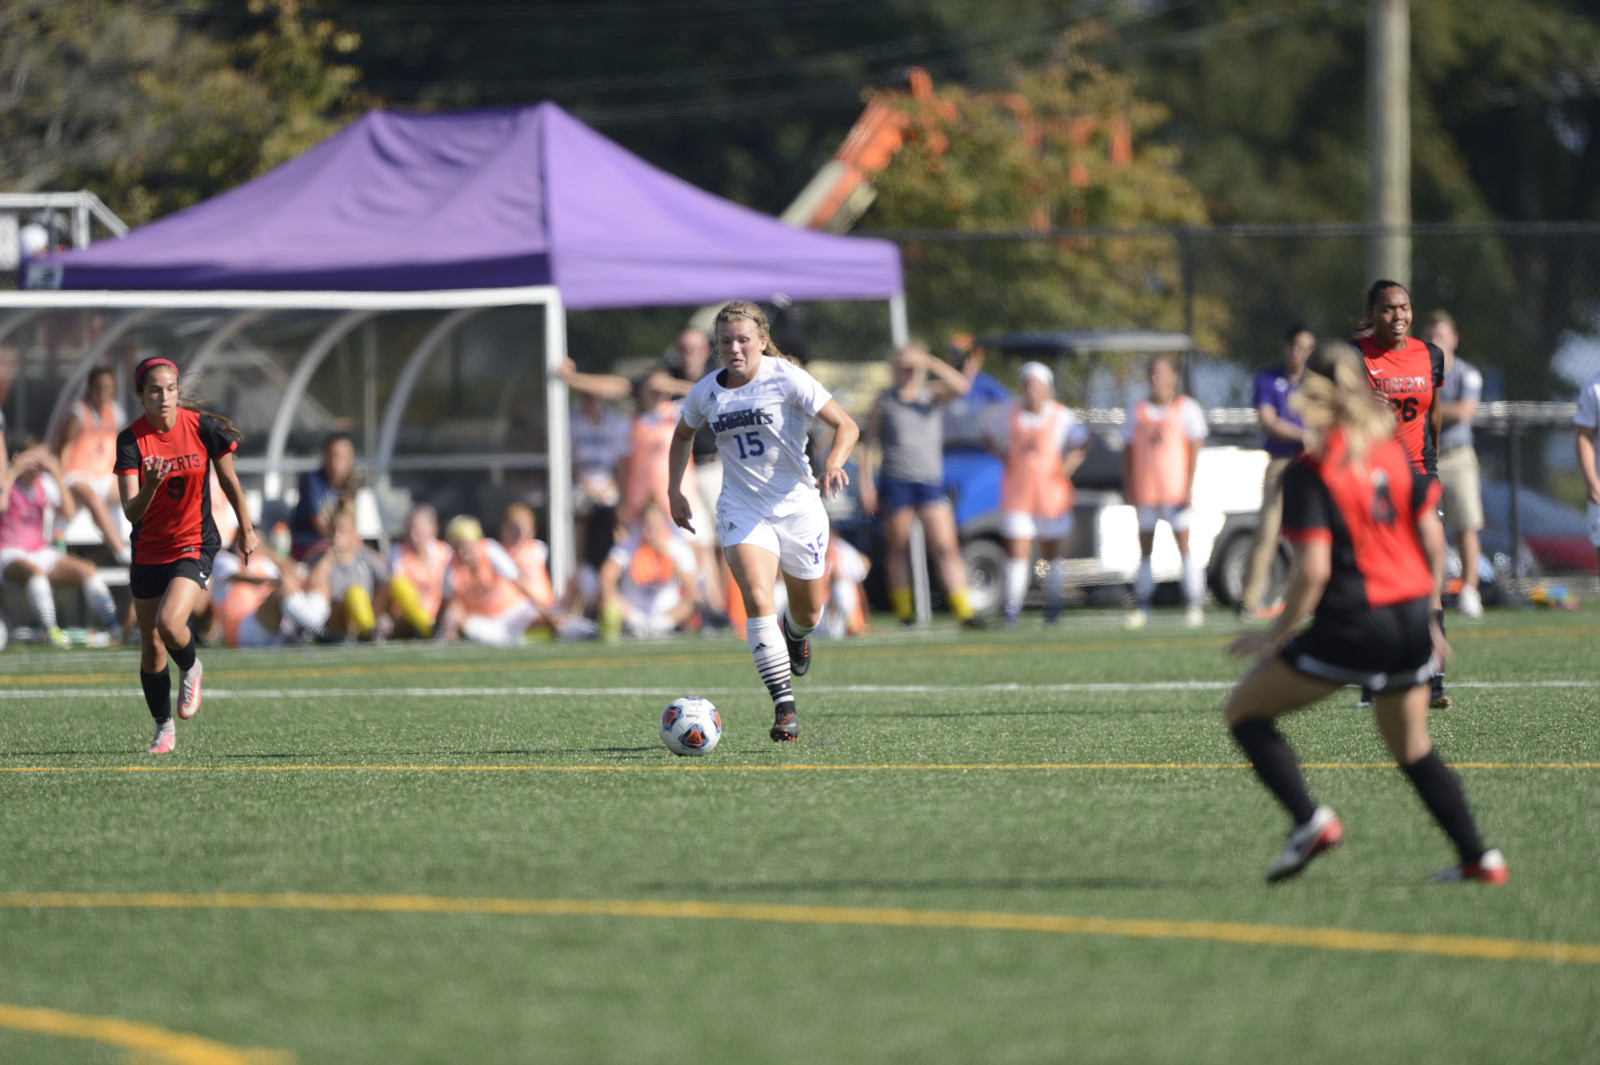 Women's Soccer Plays To A 2-2 Double Overtime Tie At Queens (N.Y.) College